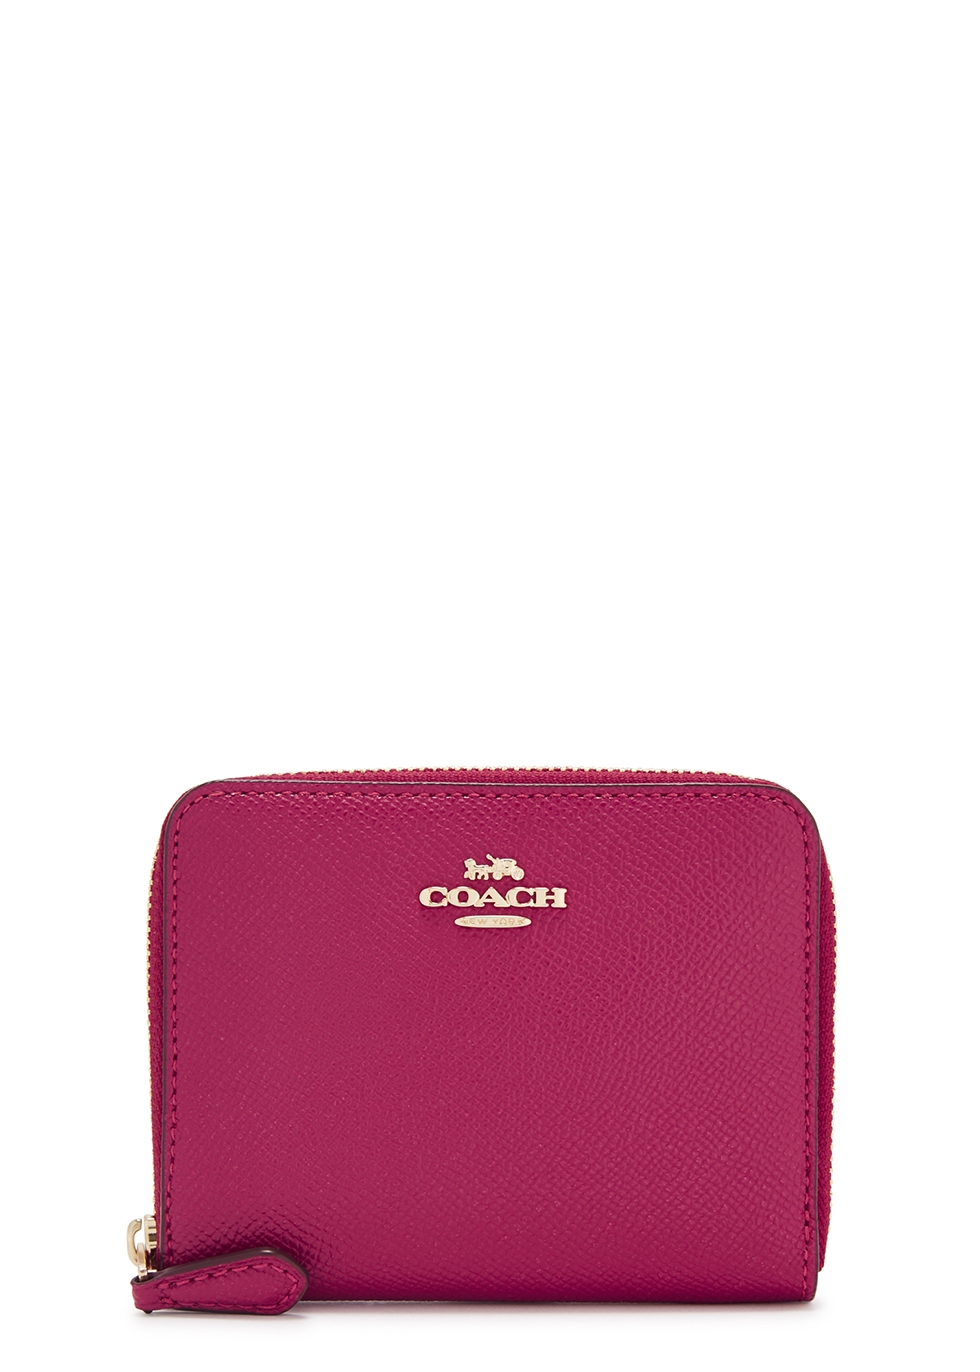 85995c631 Women's Designer Purses and Wallets - Harvey Nichols